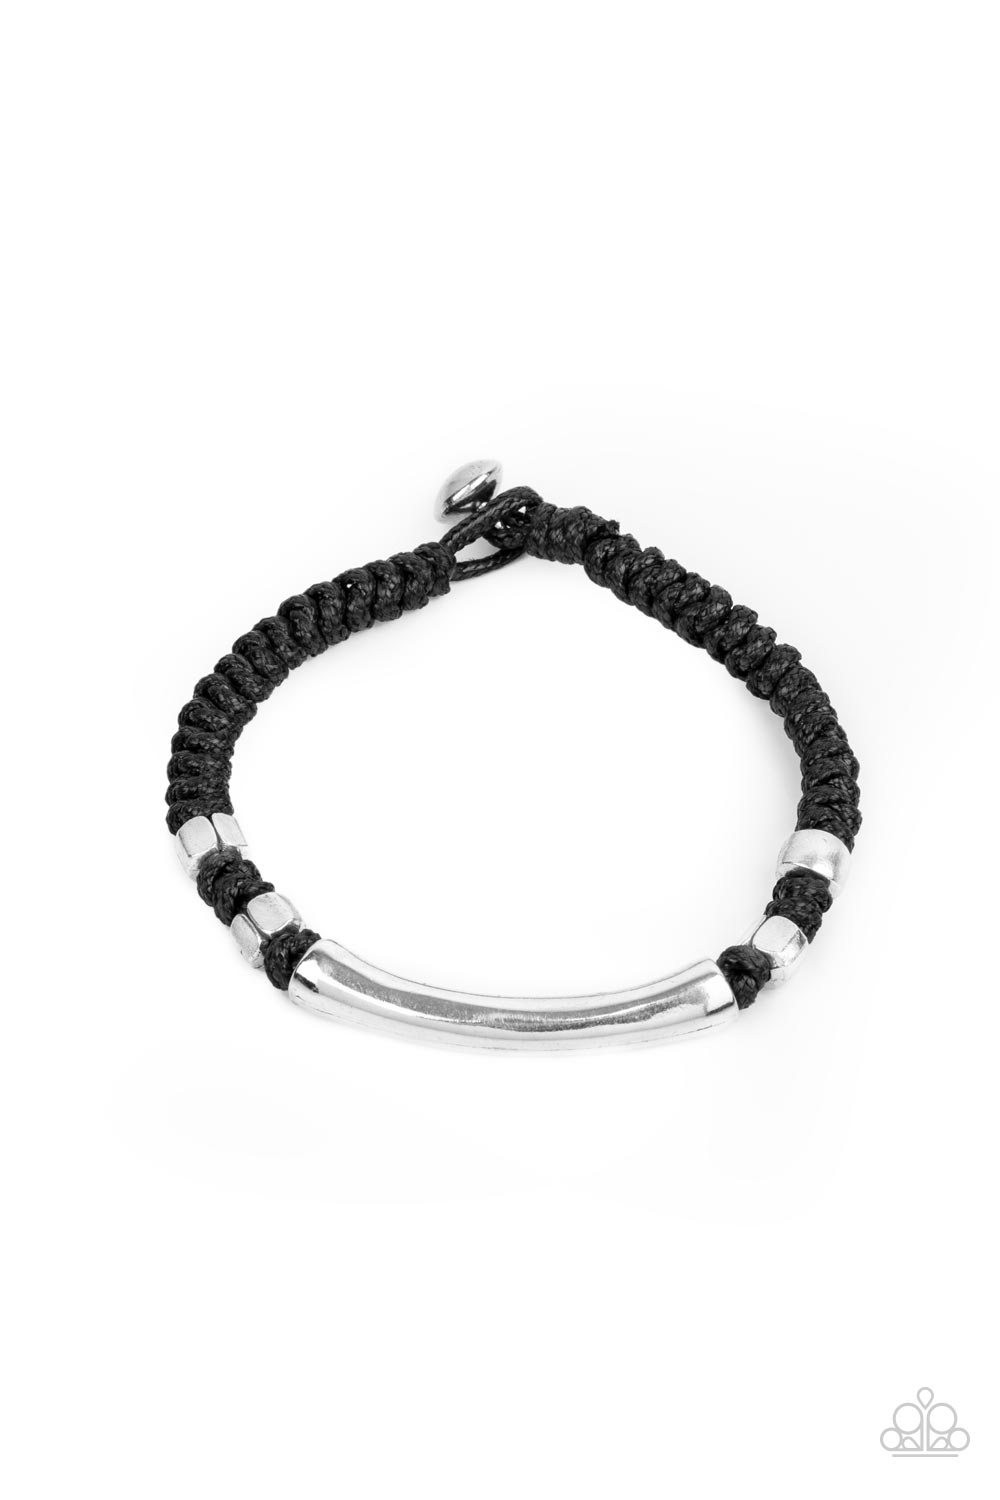 Paparazzi Accessories:  Grounded in Grit - Black (2121)